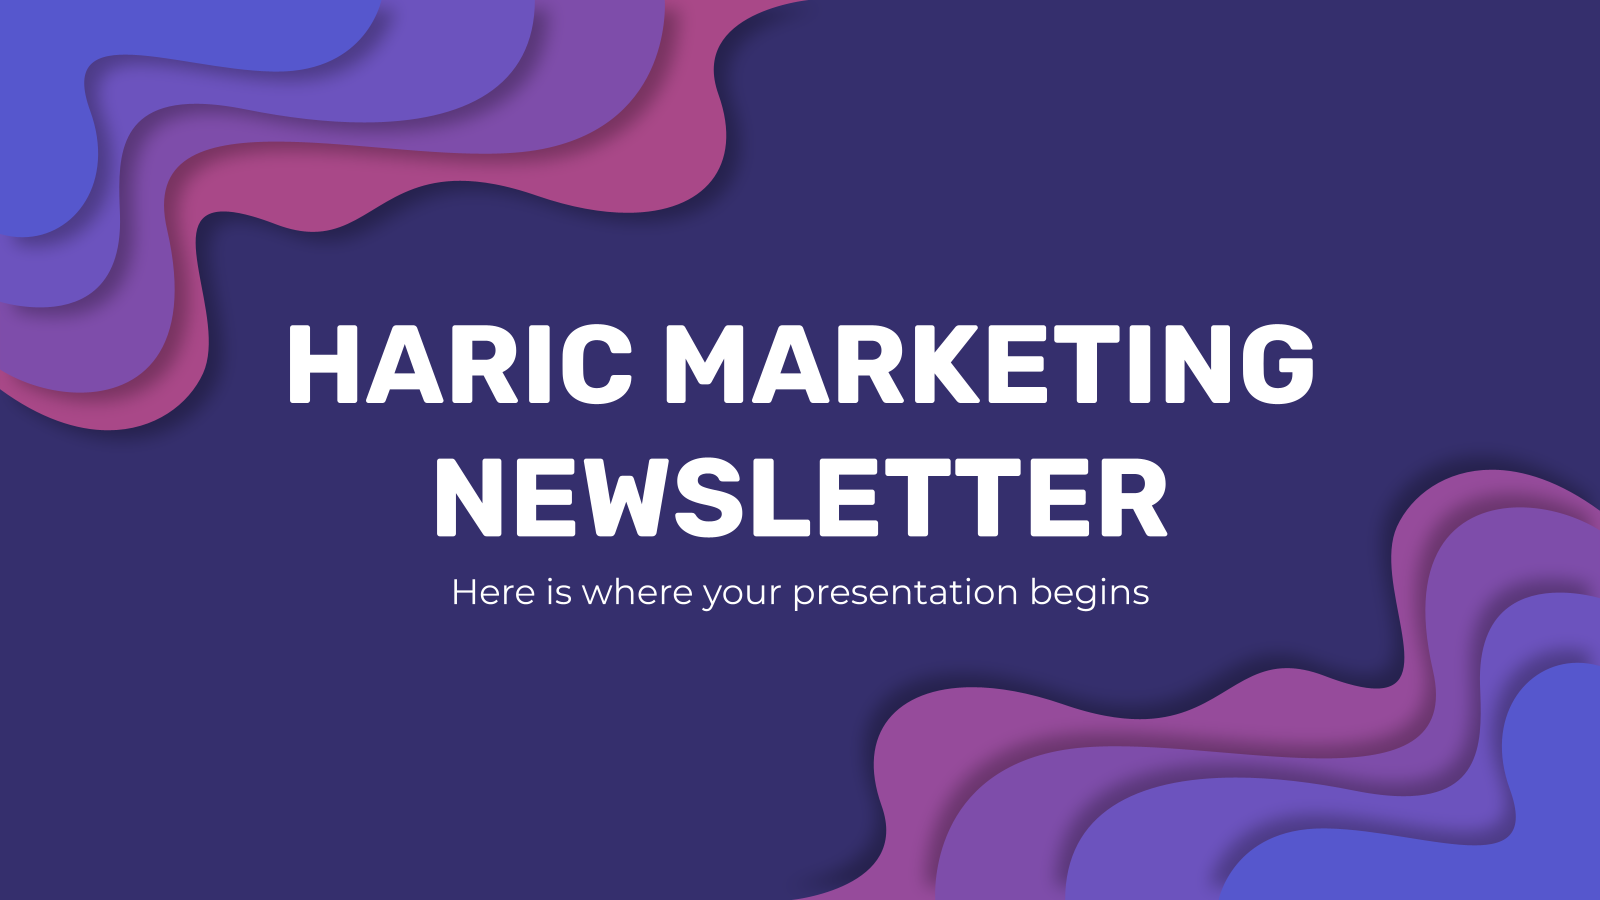 Haric Marketing Newsletter presentation template